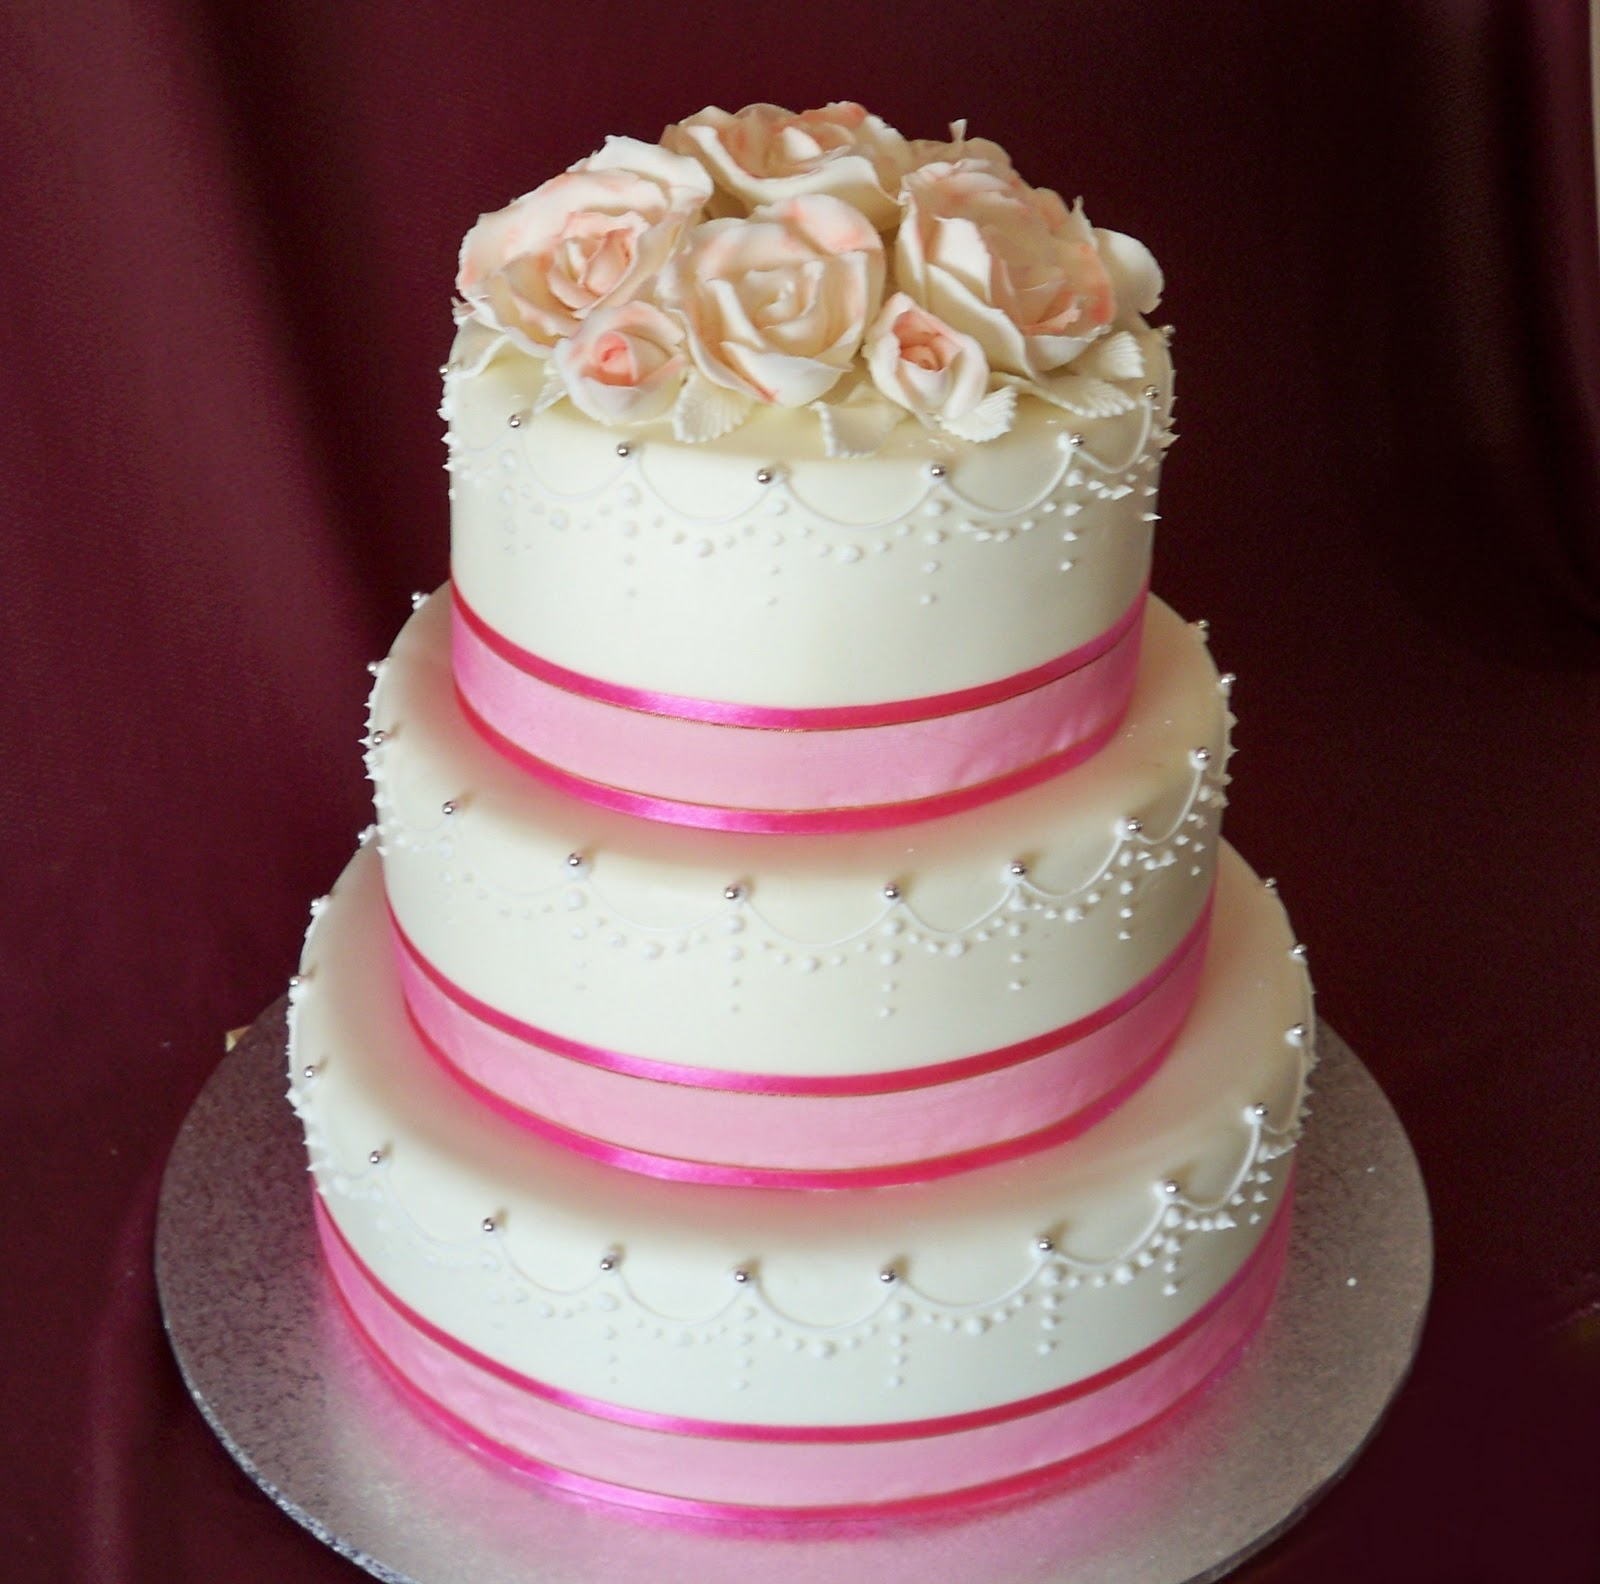 snow white and rose red wedding cakes | Elisabeth\'s Wedding Cakes